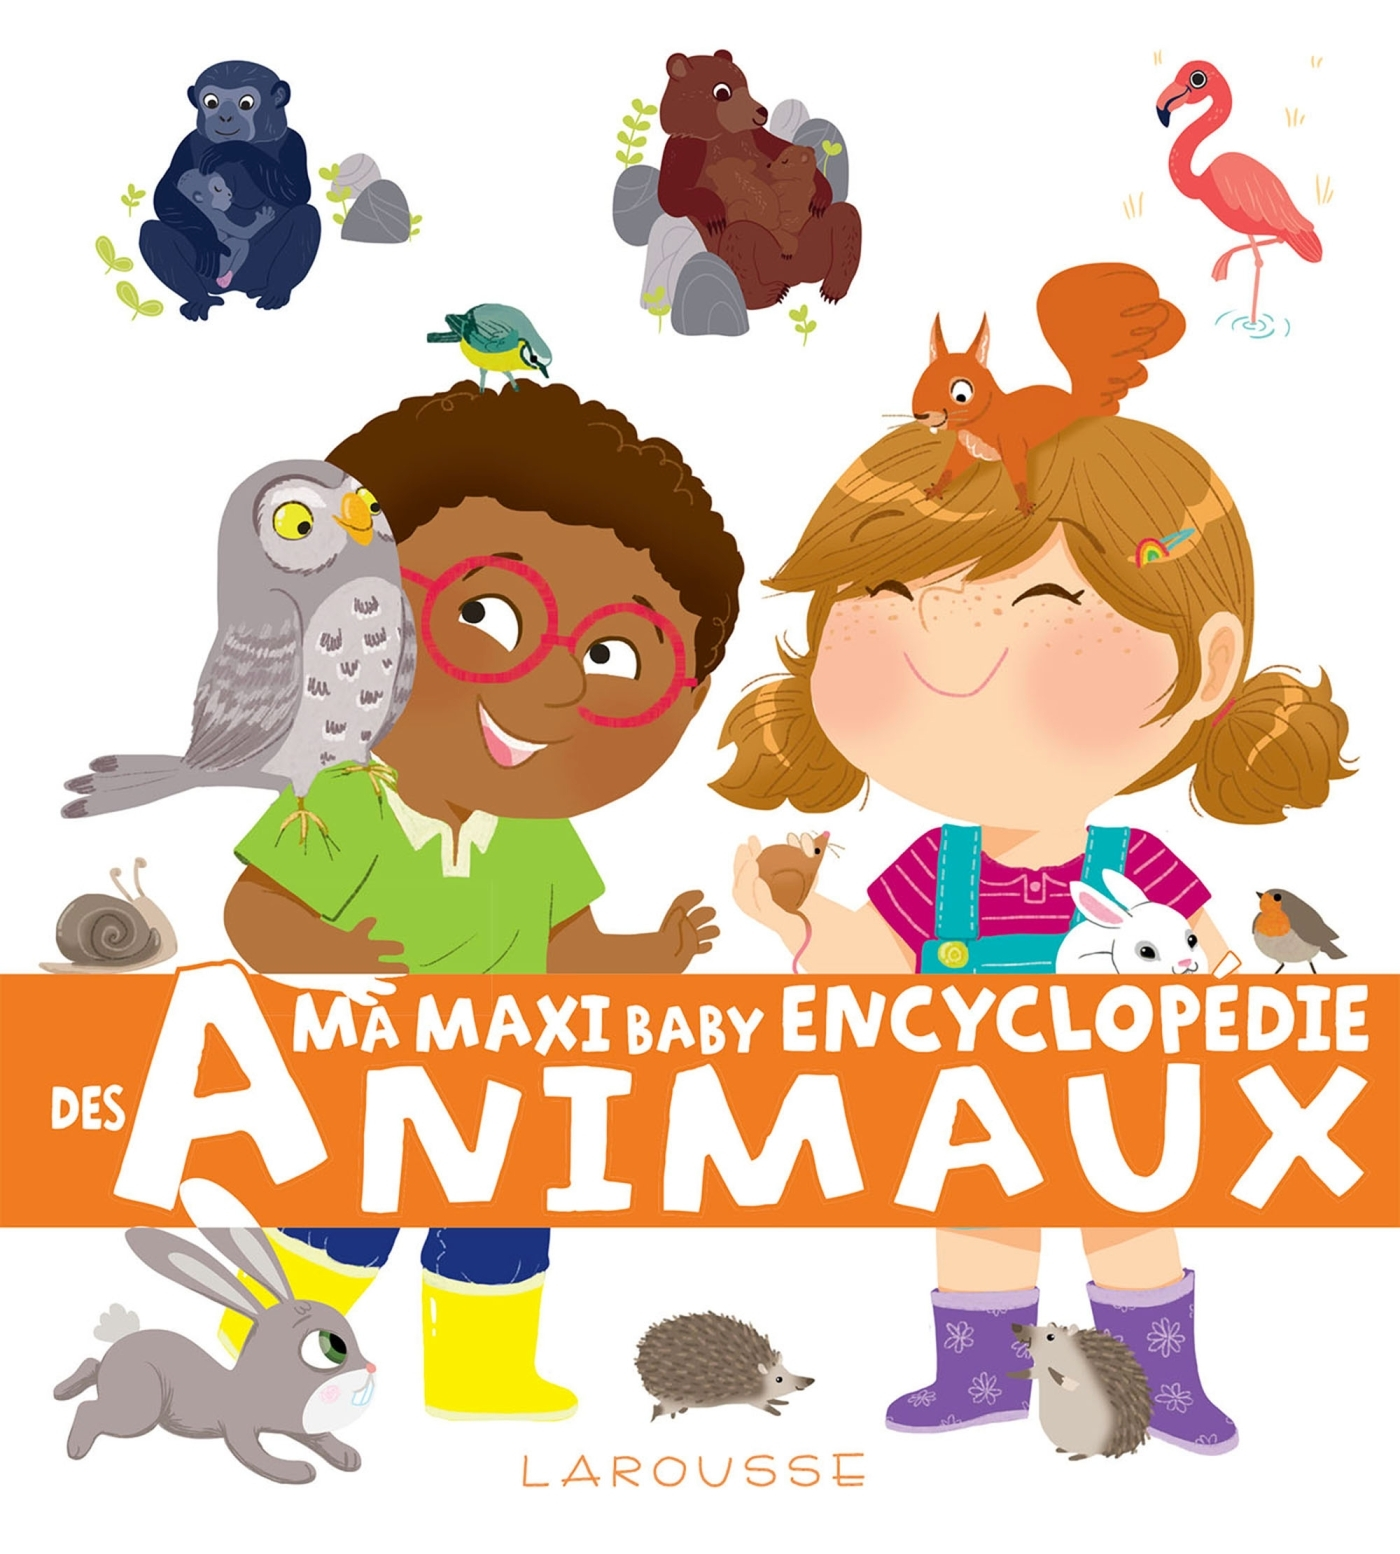 MA MAXI BABY ENCYCLOPEDIE DES ANIMAUX